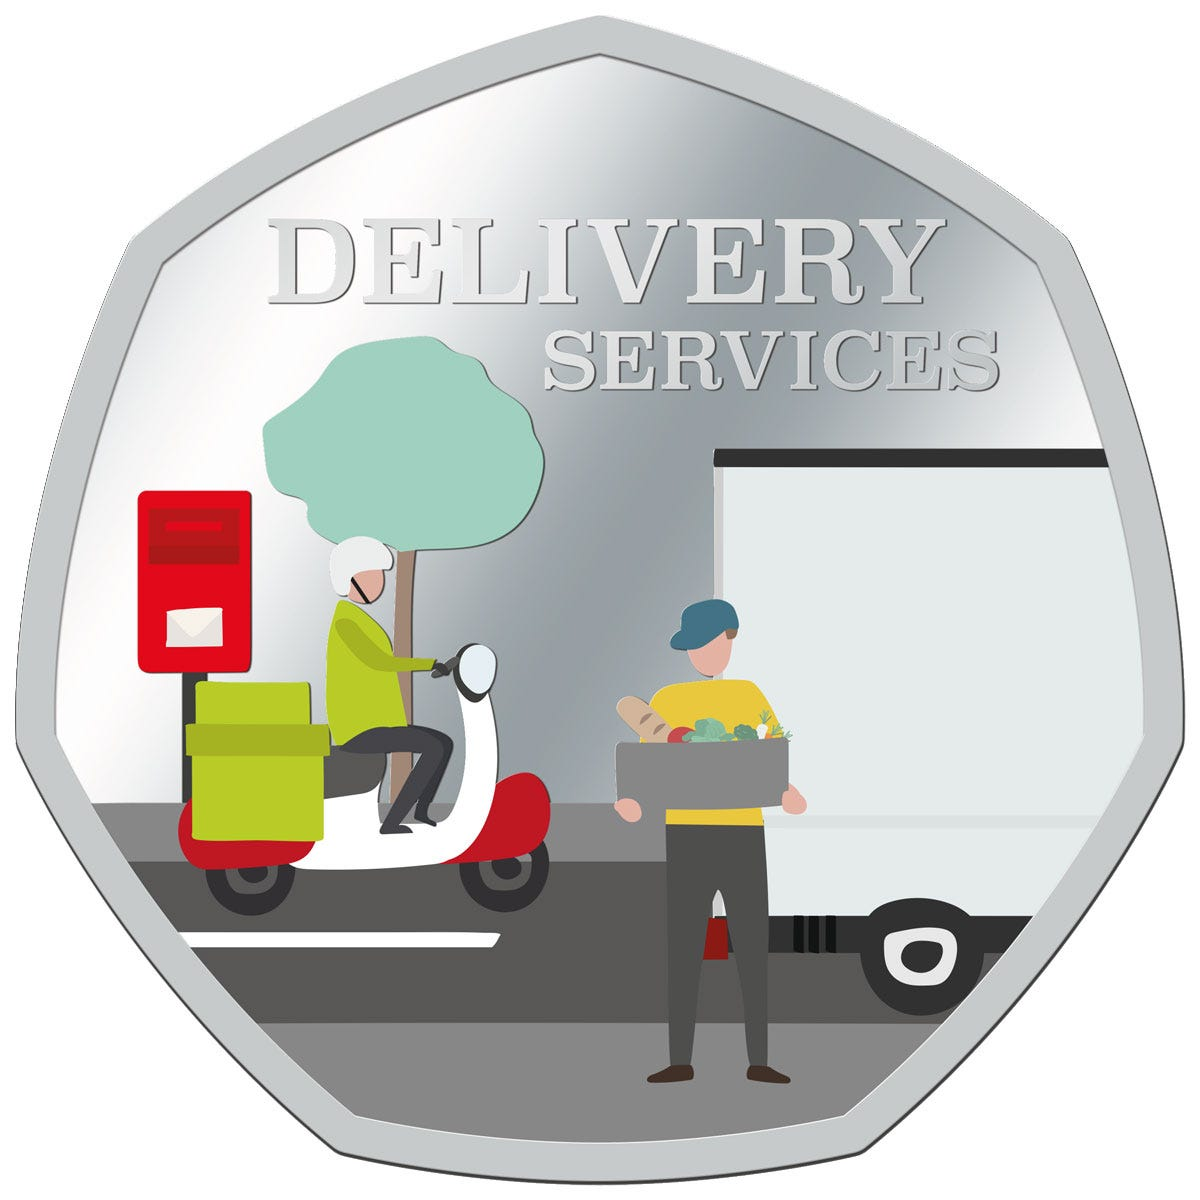 Thank-you Delivery Services